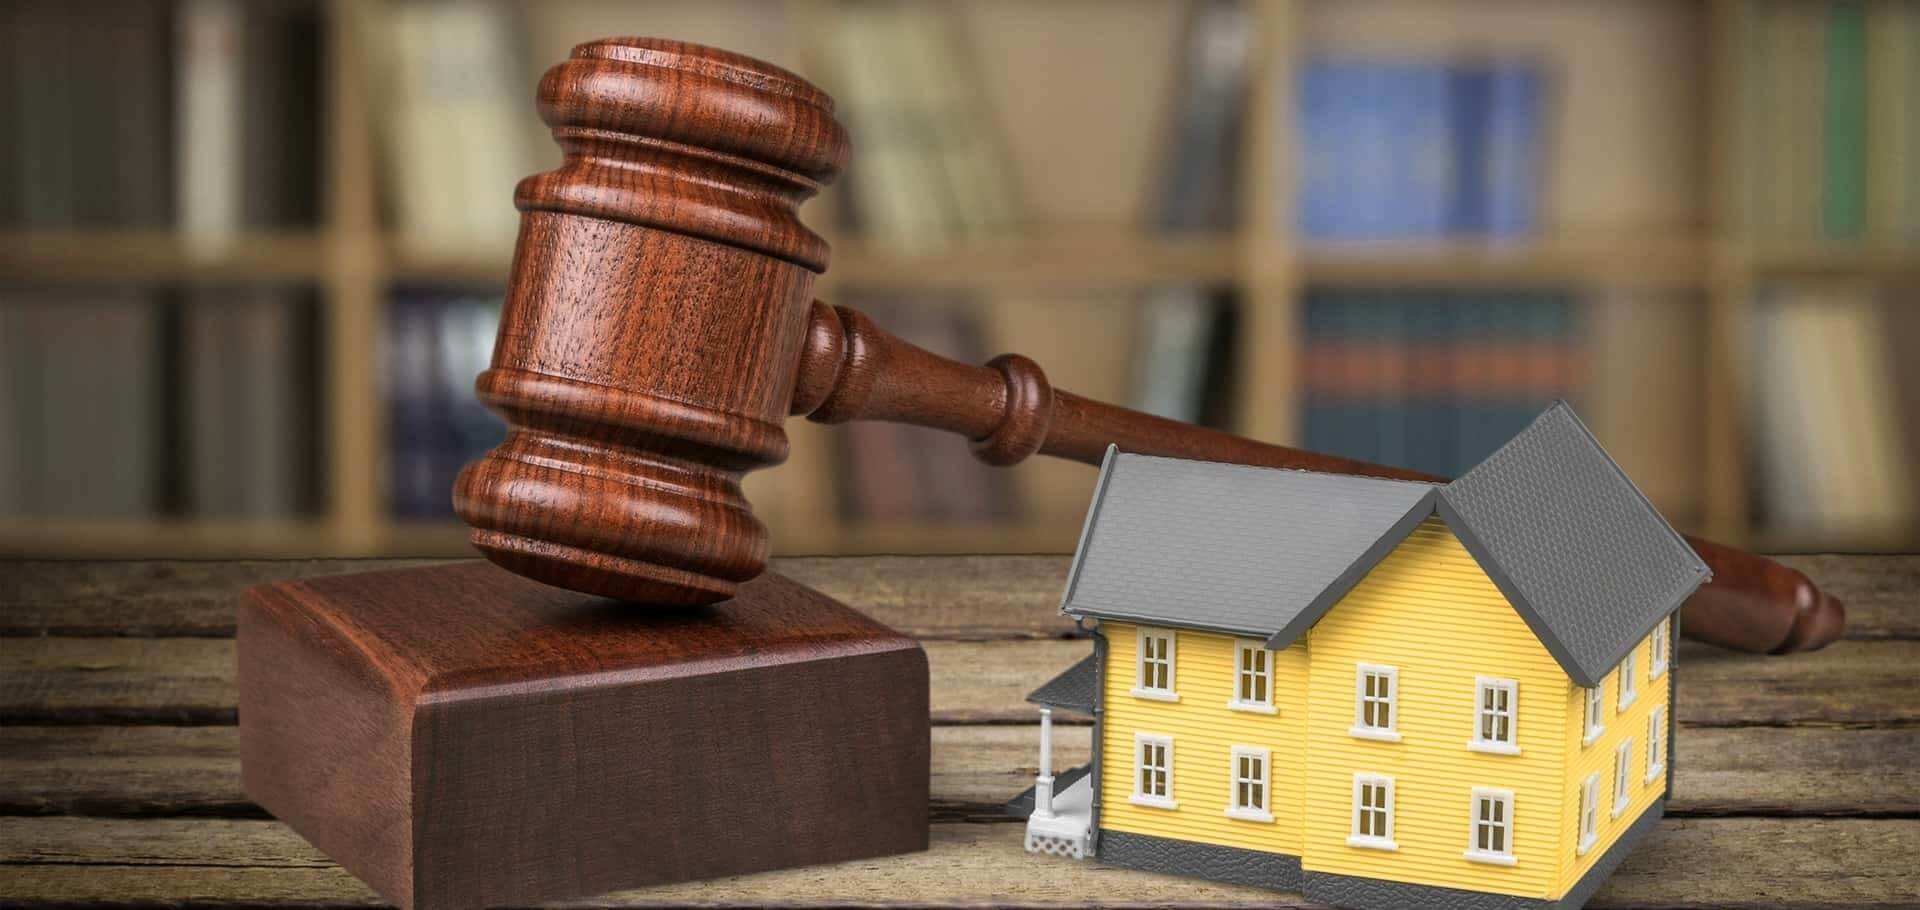 Real estate law with a hammer and a home